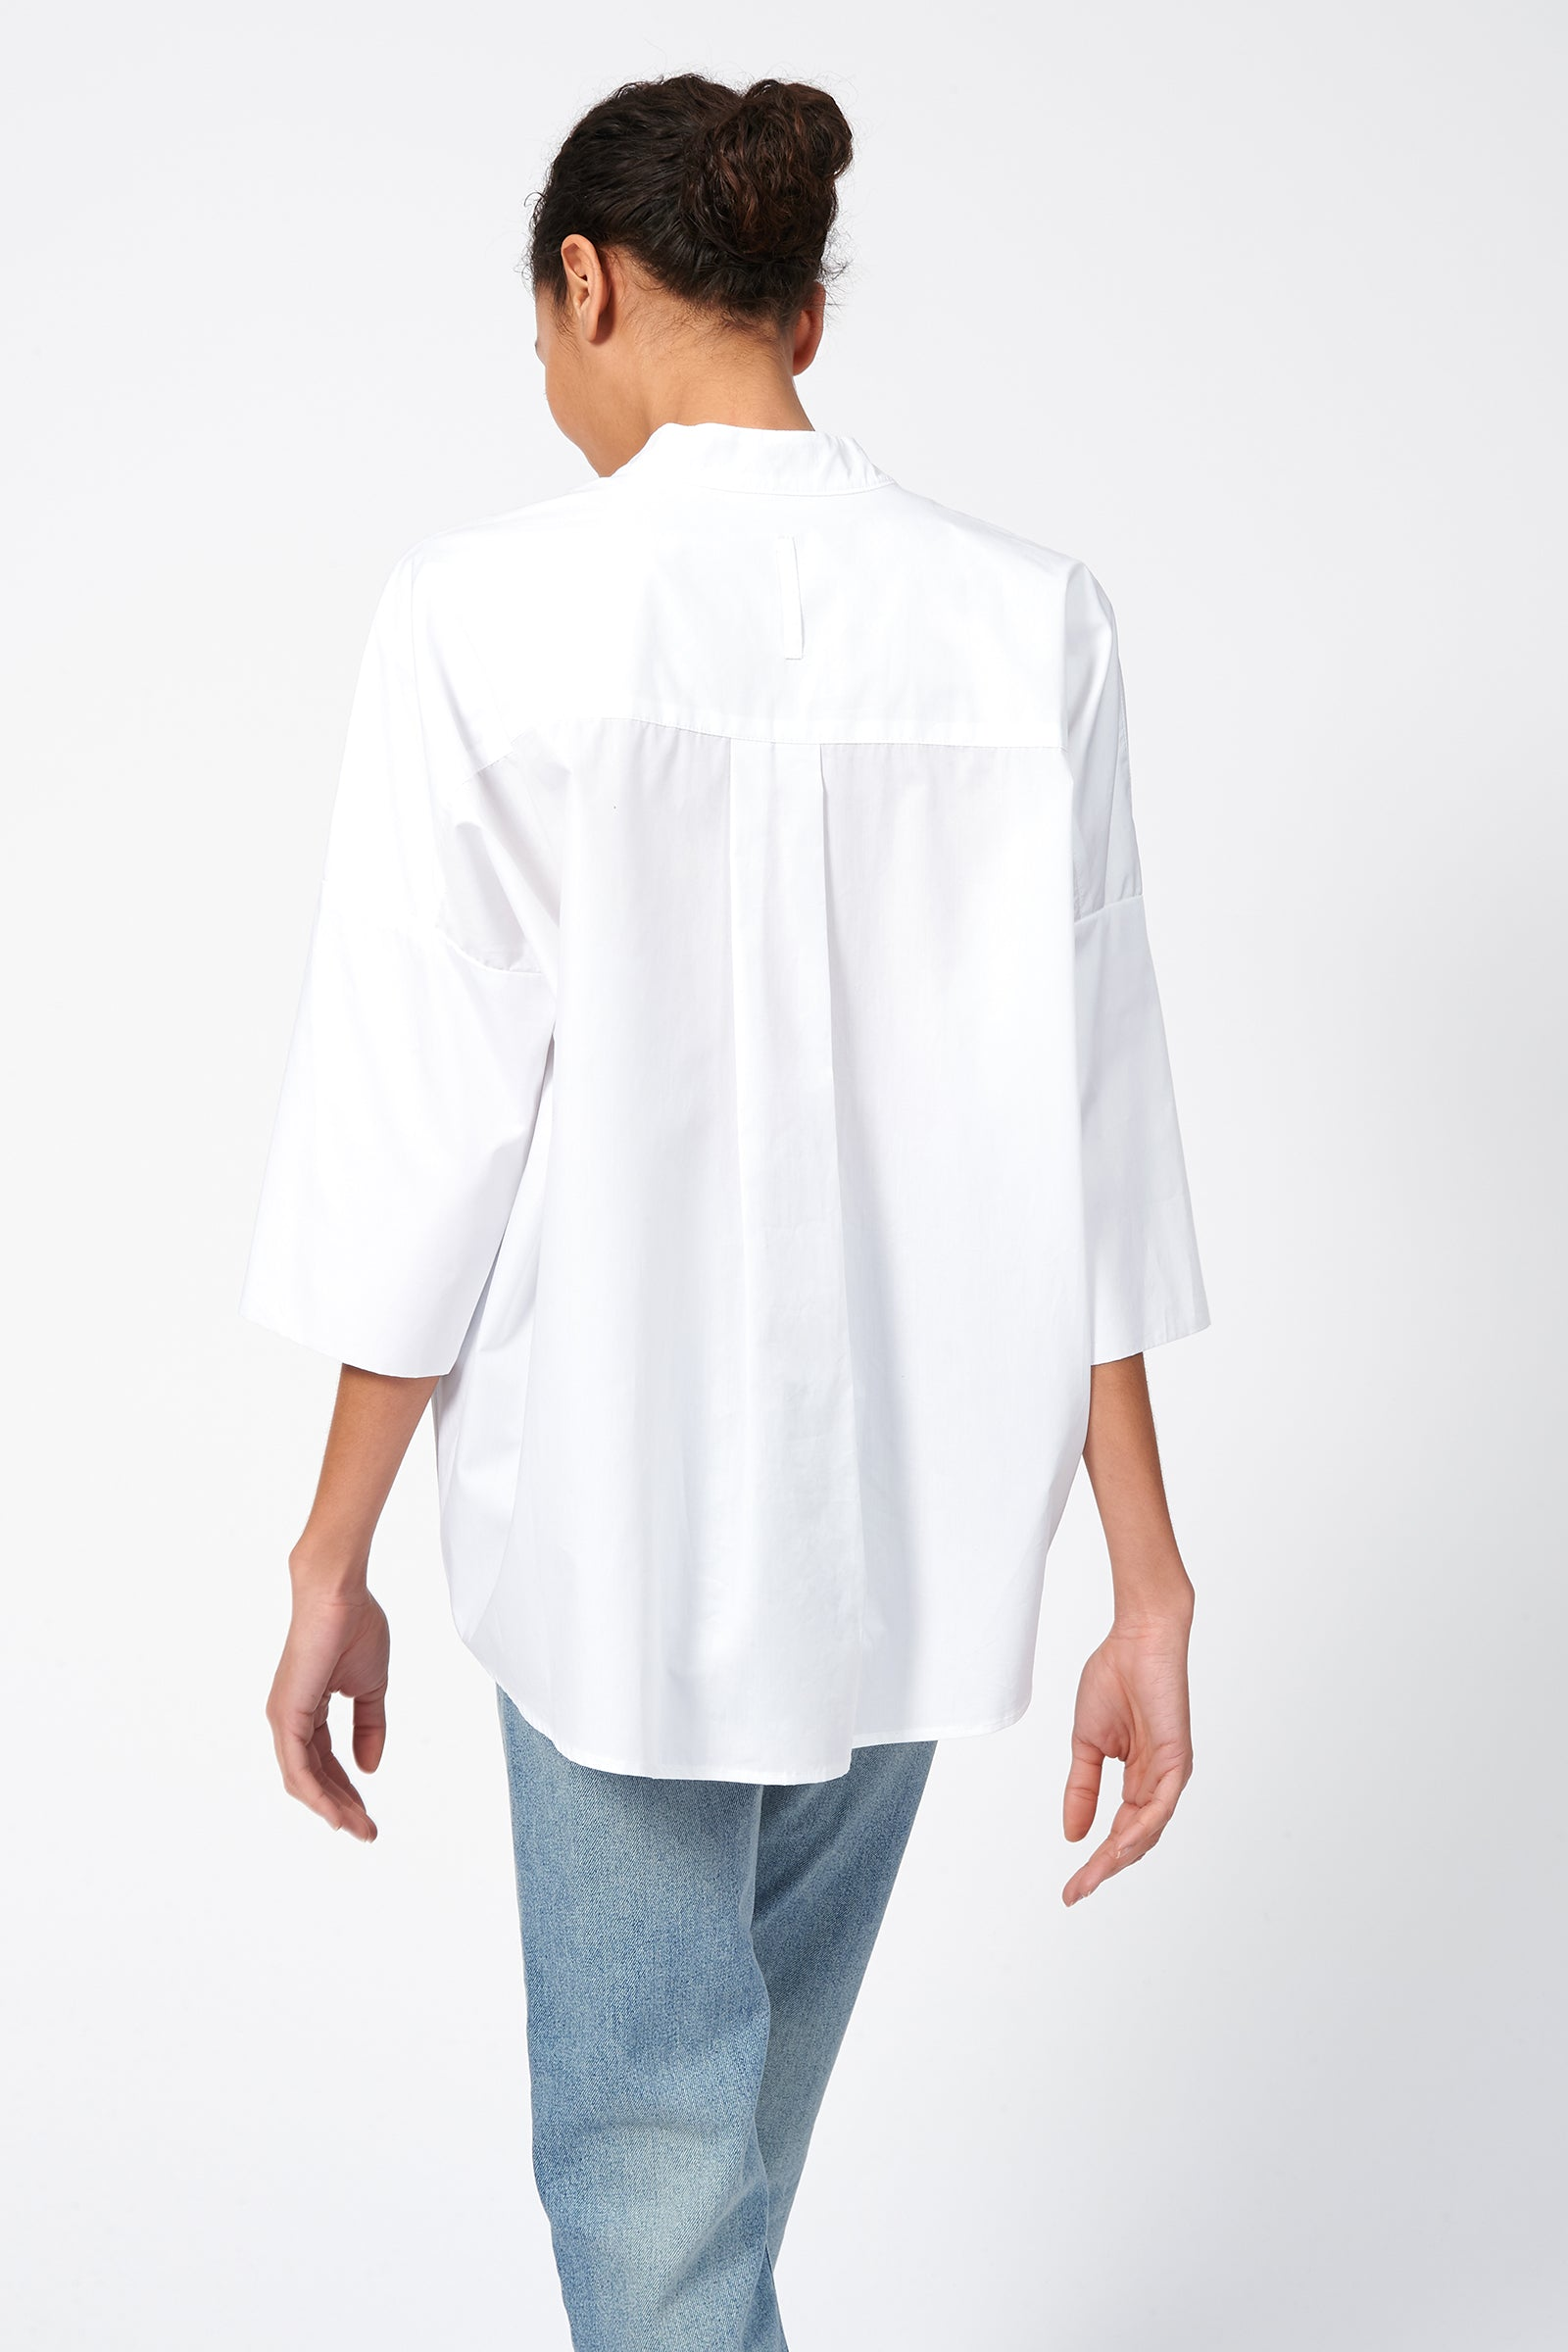 Kal Rieman Pleat Hem Kimono in White Poplin on Model Front View